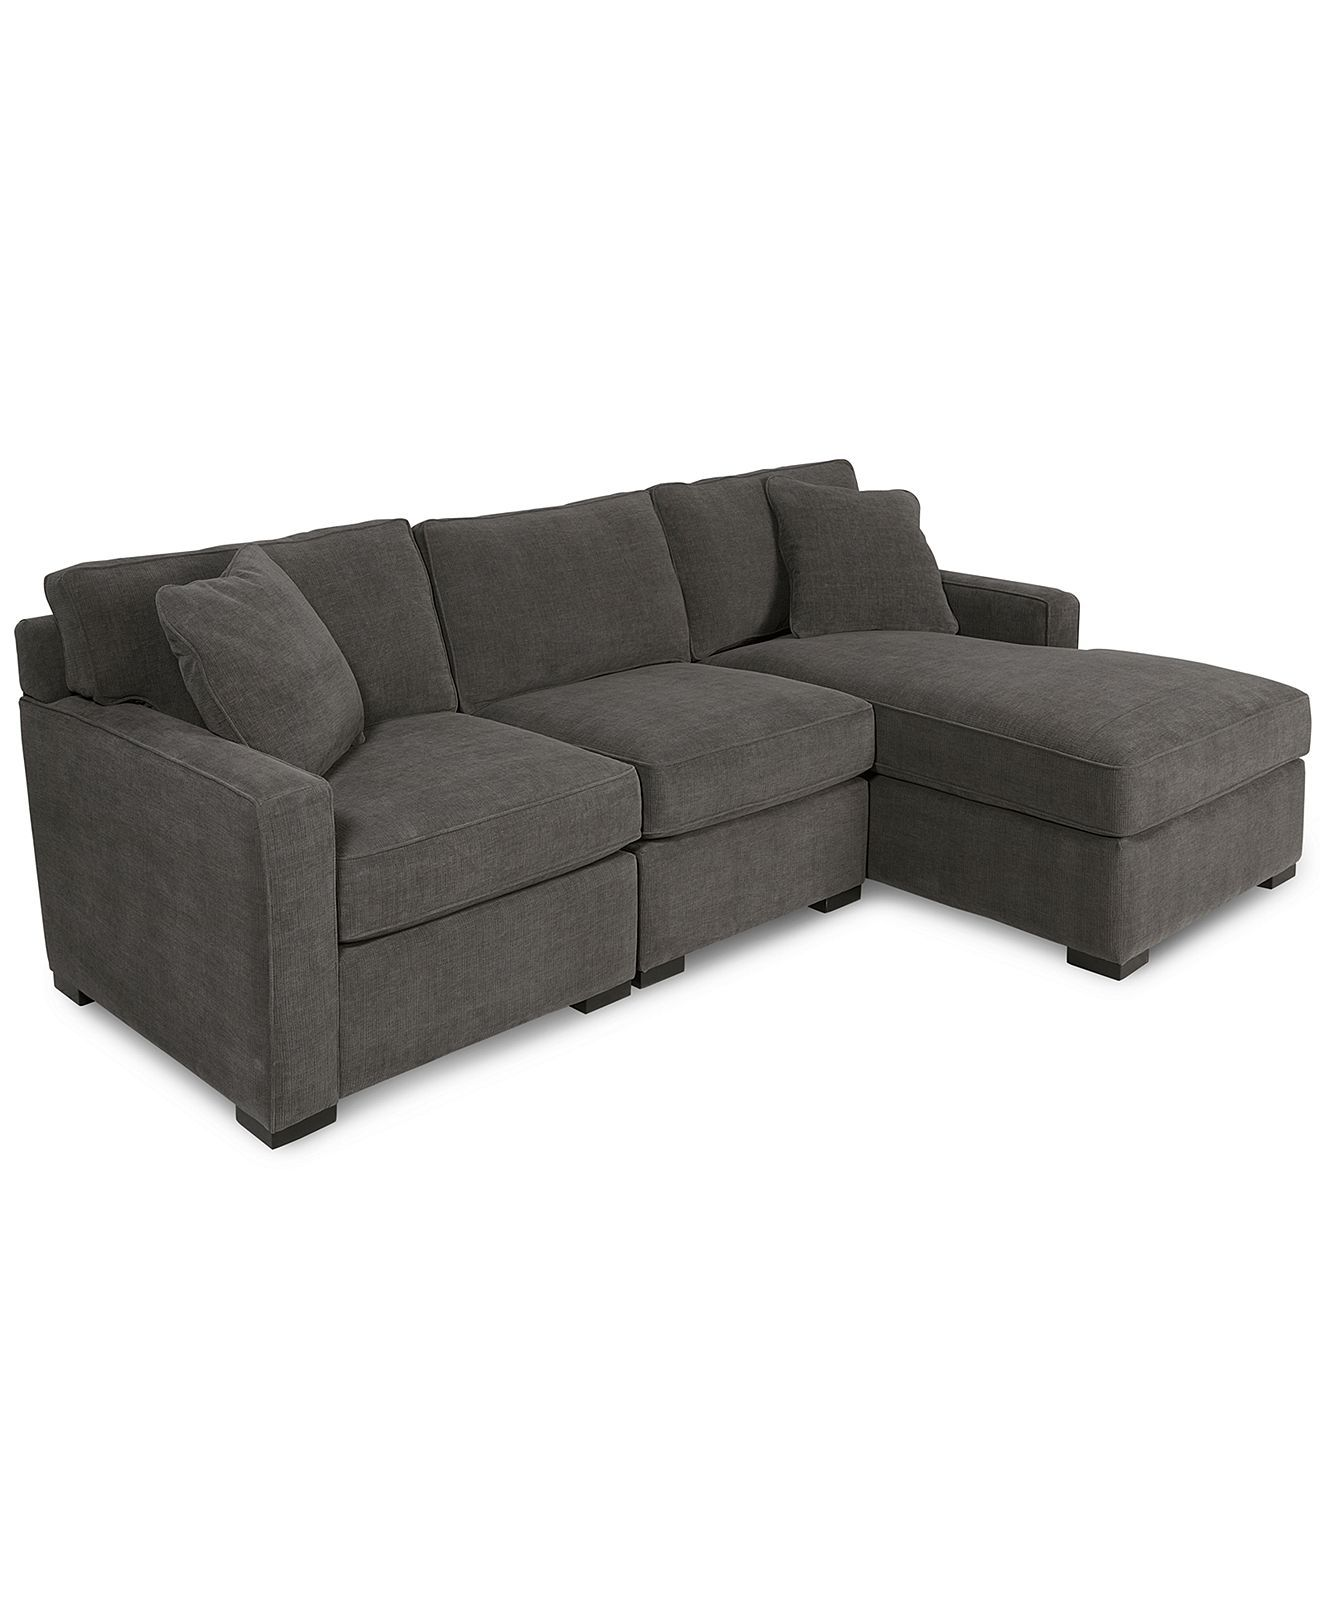 Best Radley 3 Piece Fabric Chaise Sectional Sofa Created For 400 x 300